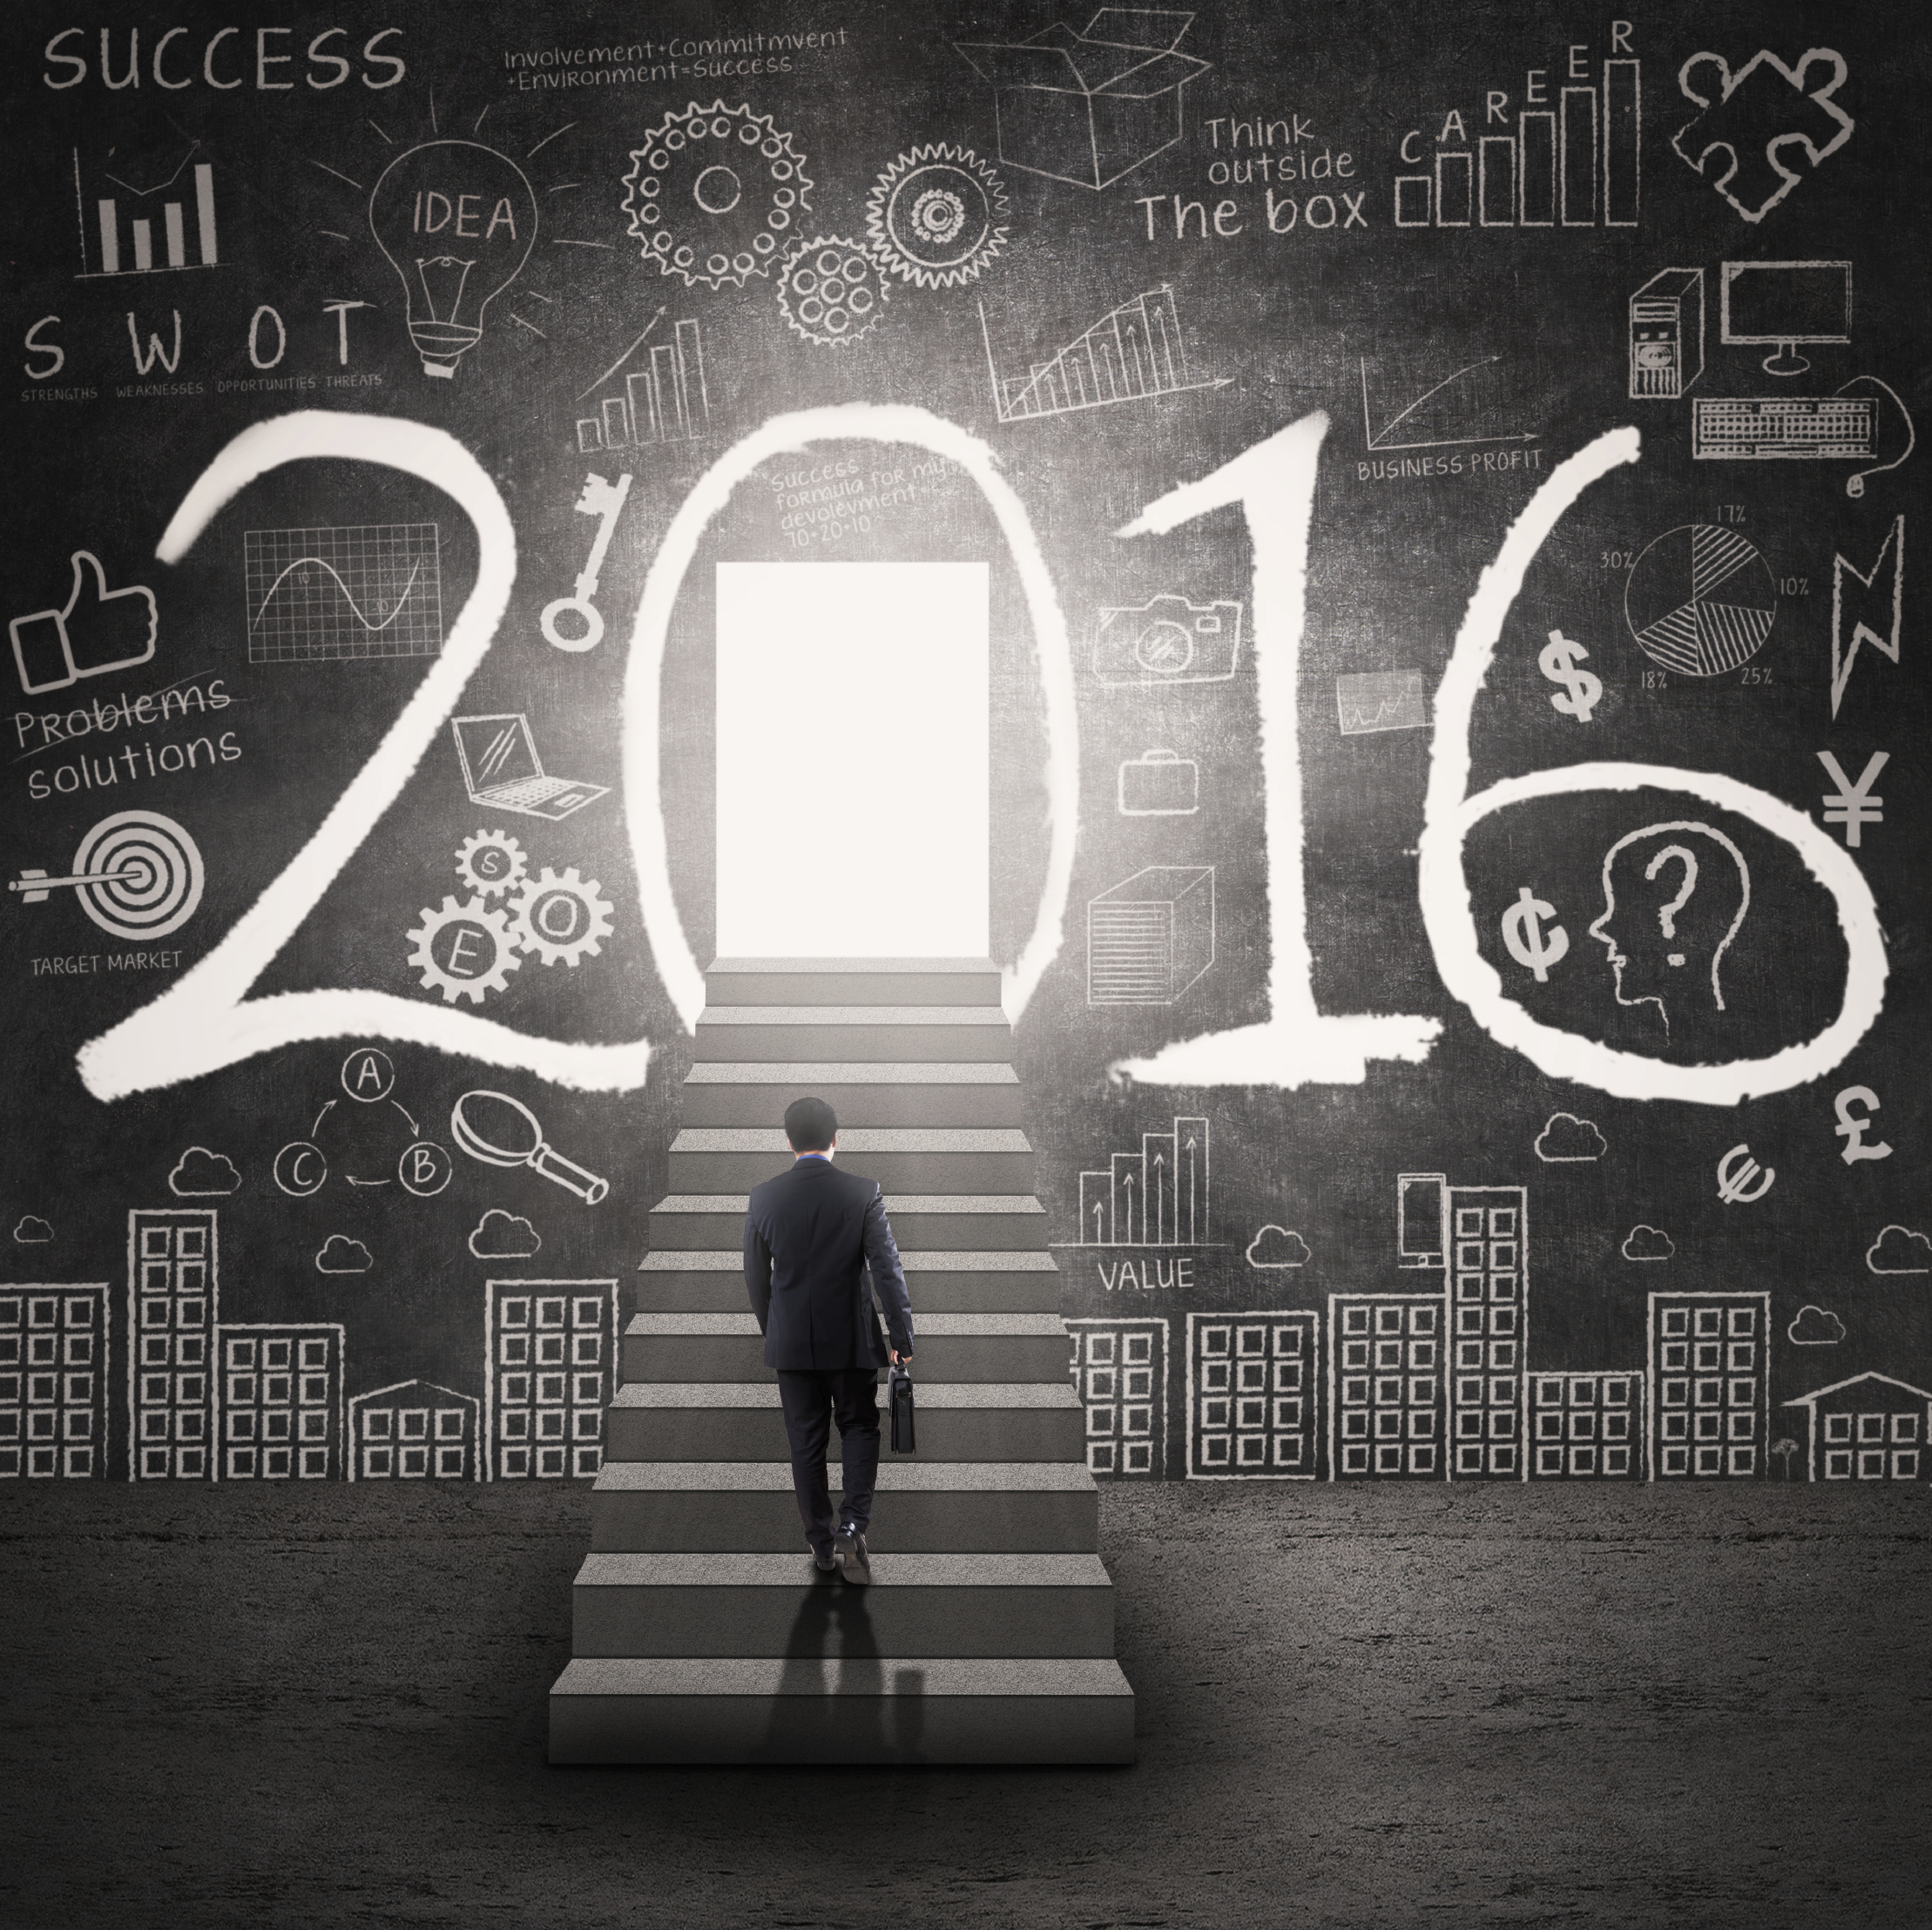 5 Factors Financial Advisors Should Consider for Growth in 2016 and Beyond